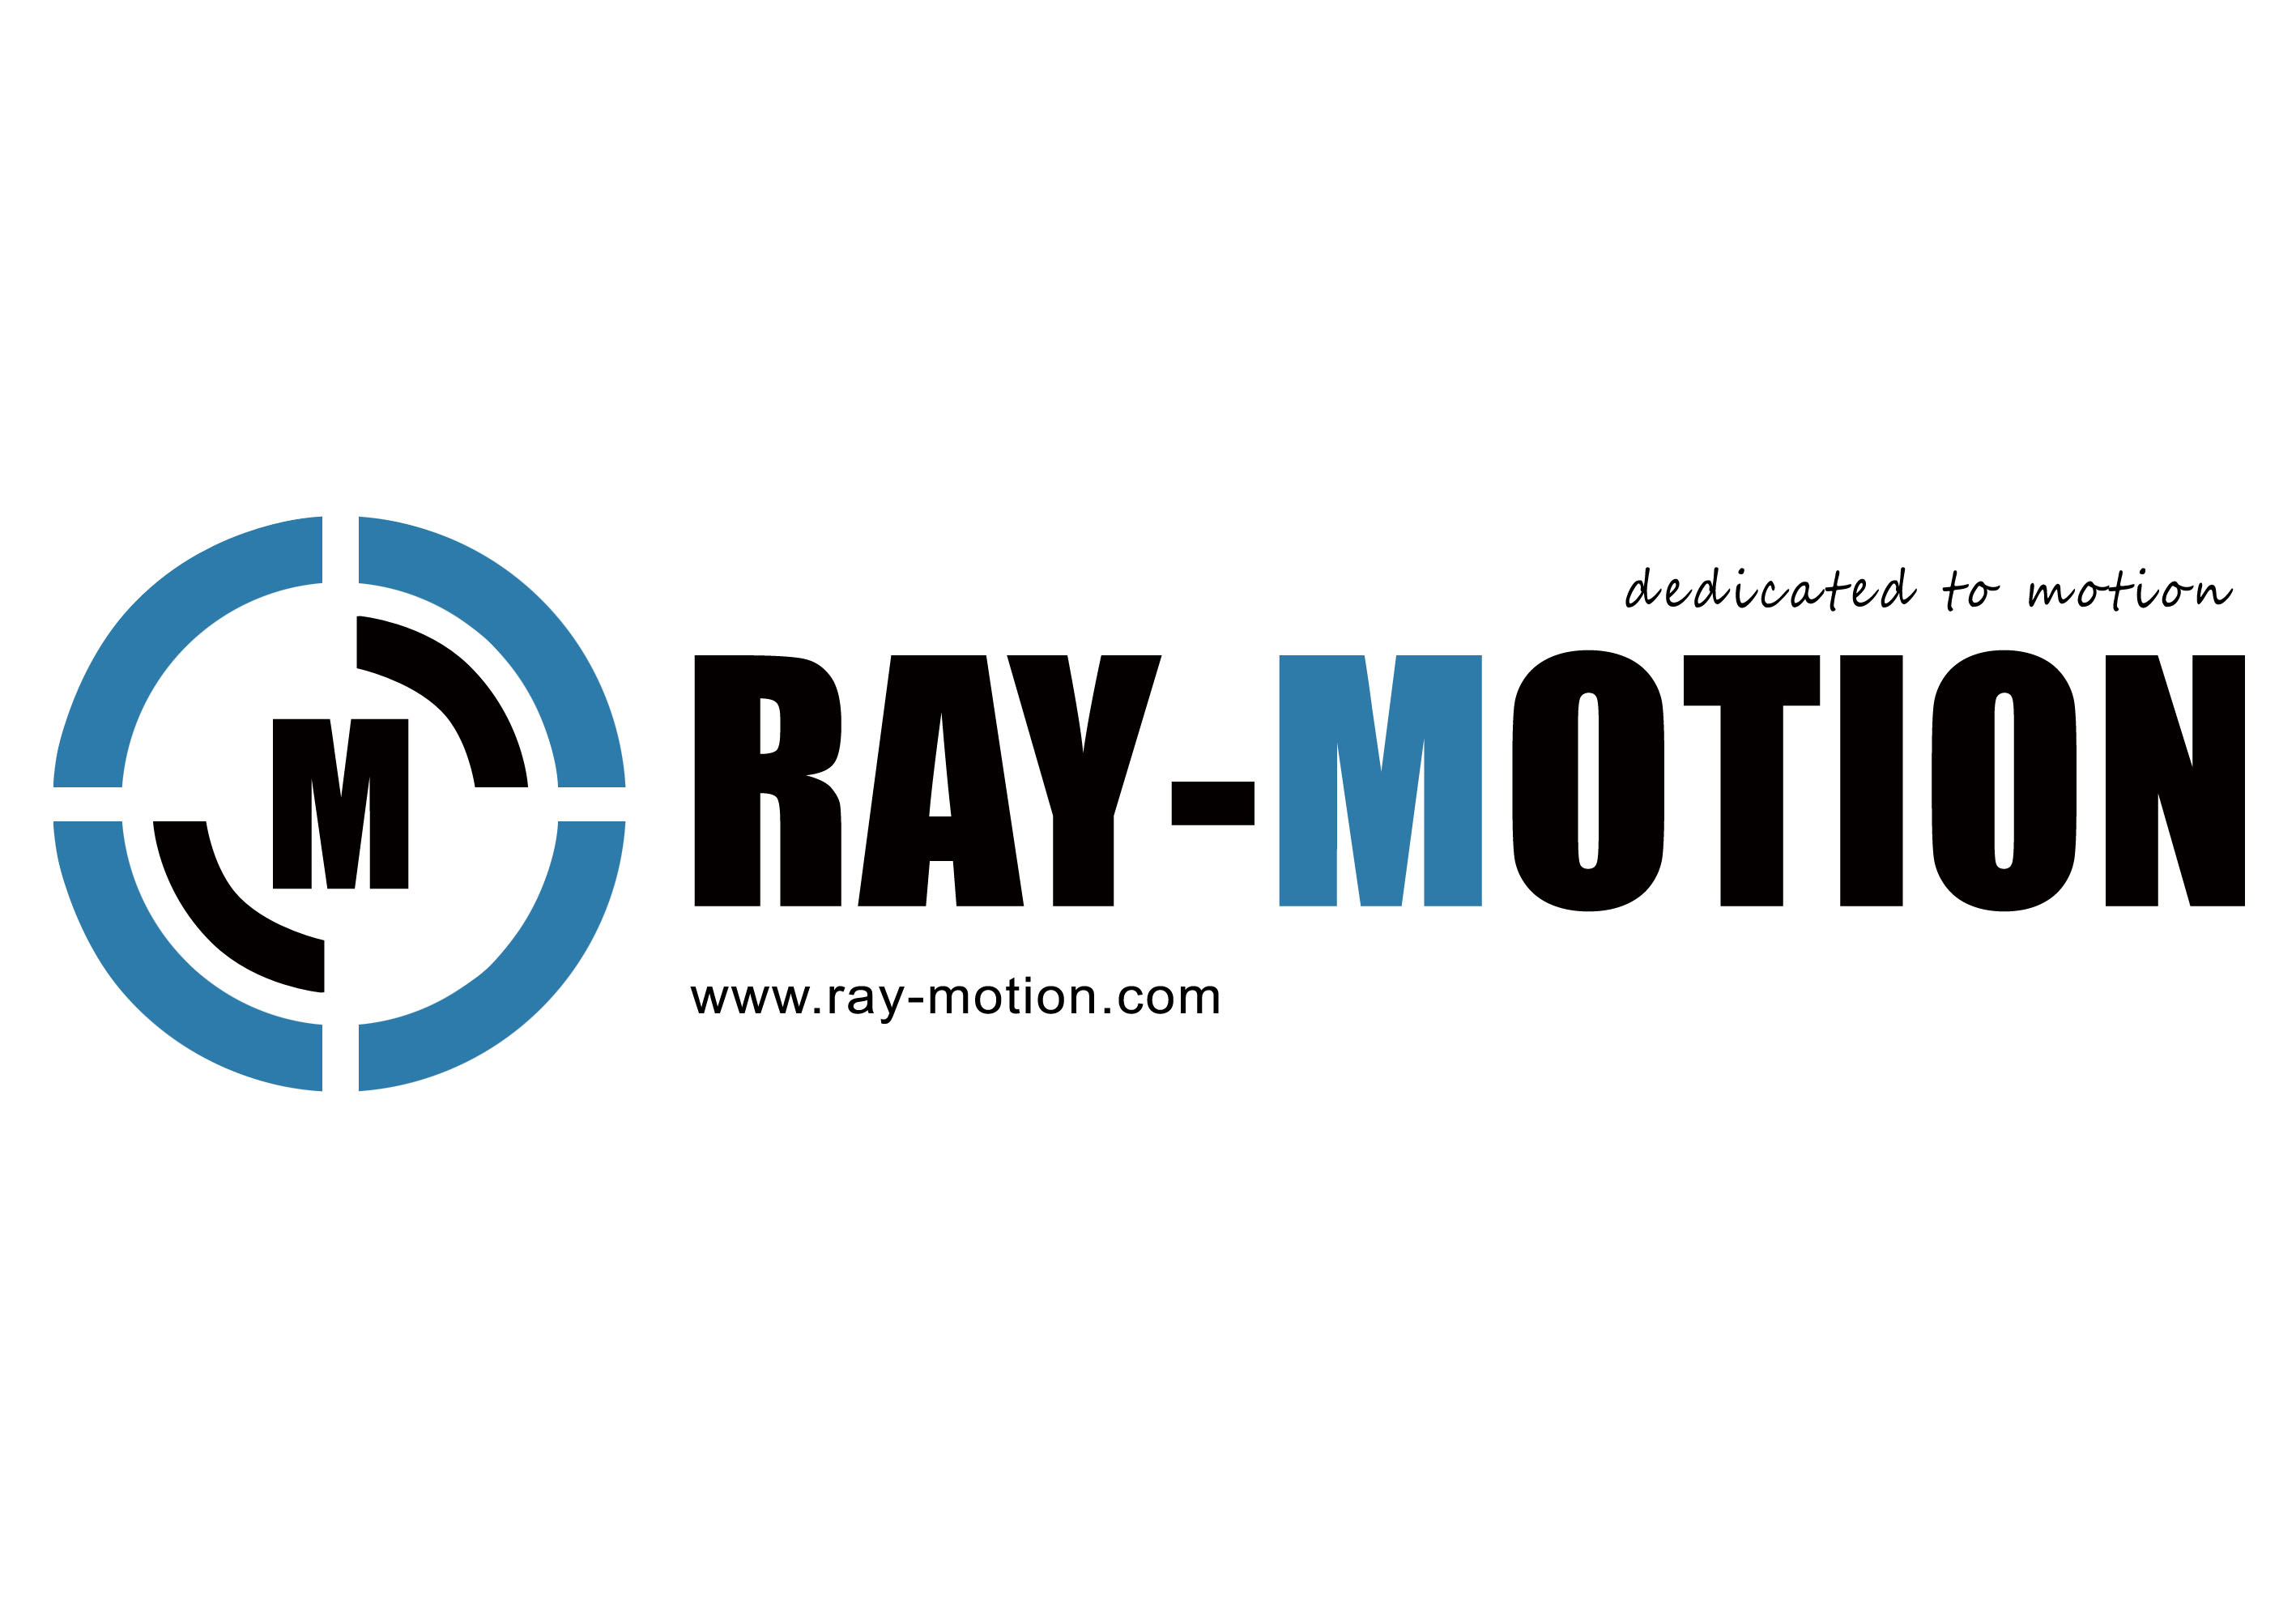 ray_motion_logo